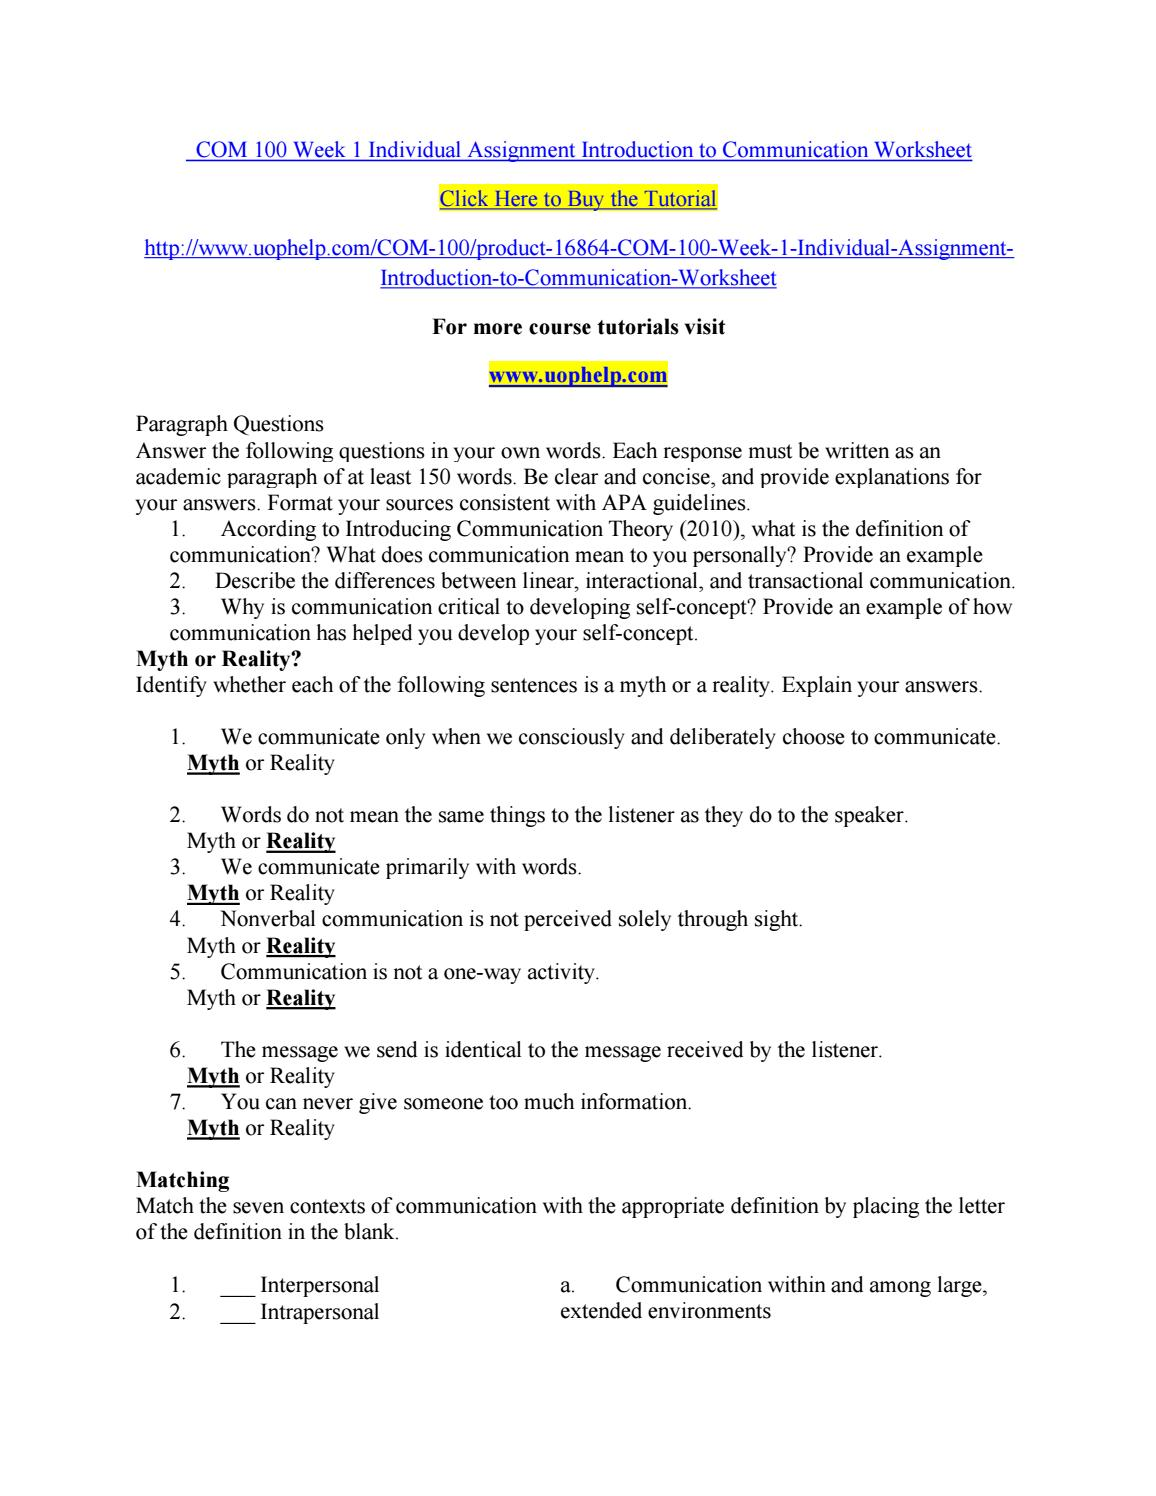 com 100 introduction to communication worksheet Find 100% verified bscom 100 week 1 introduction to communication worksheet for university of phoenix students at assignmentehelpcom.